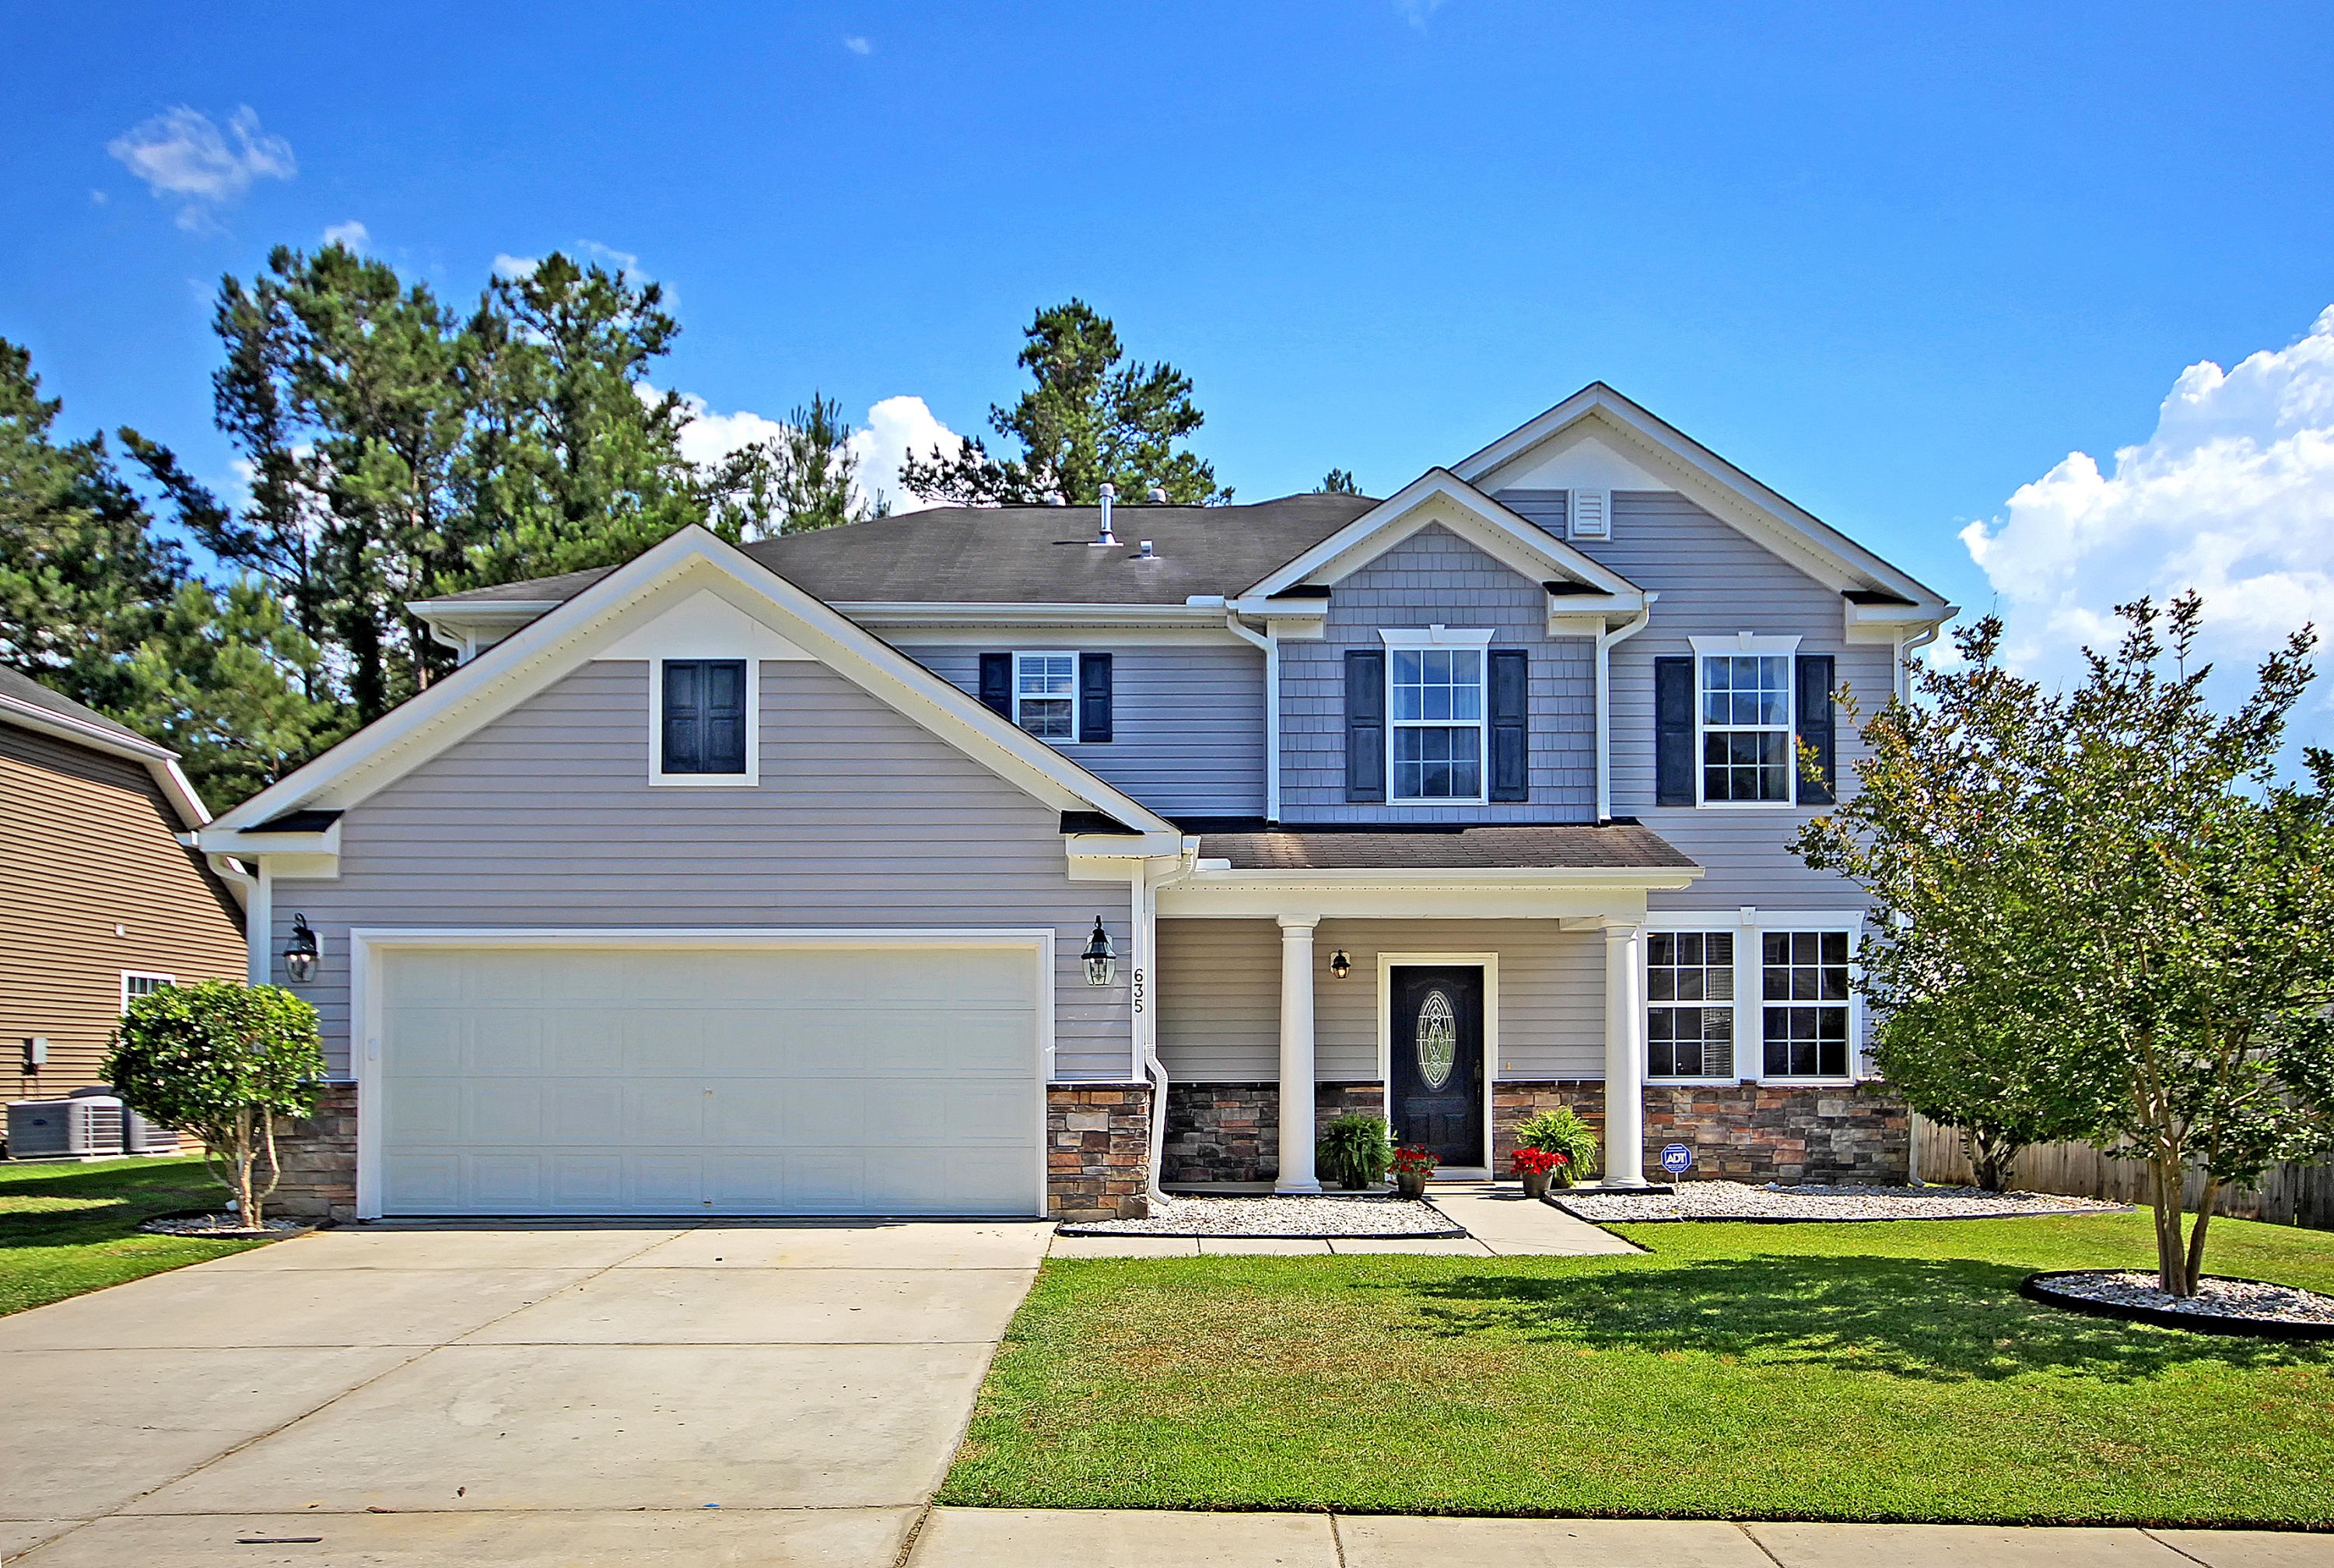 635 Grassy Hill Road Summerville, SC 29483